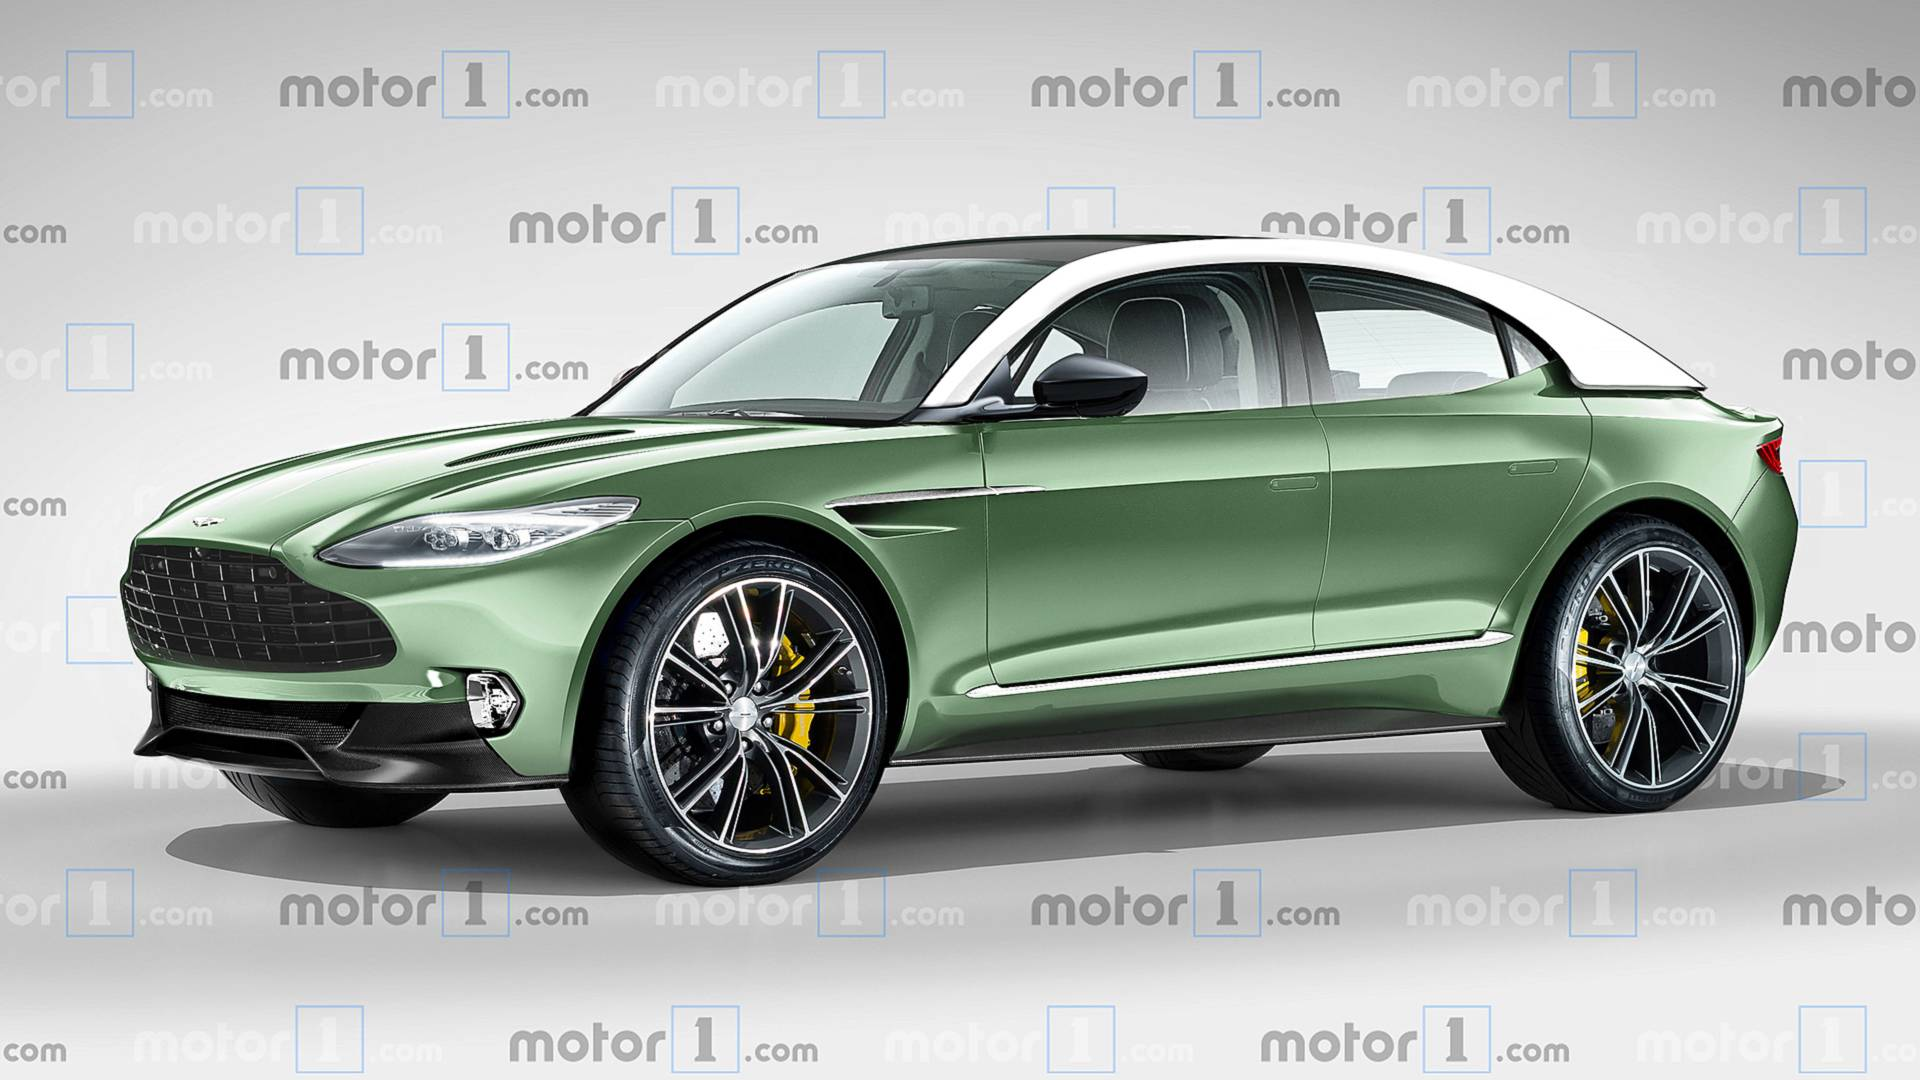 get ready for the inevitable: aston martin varekai suv rendered